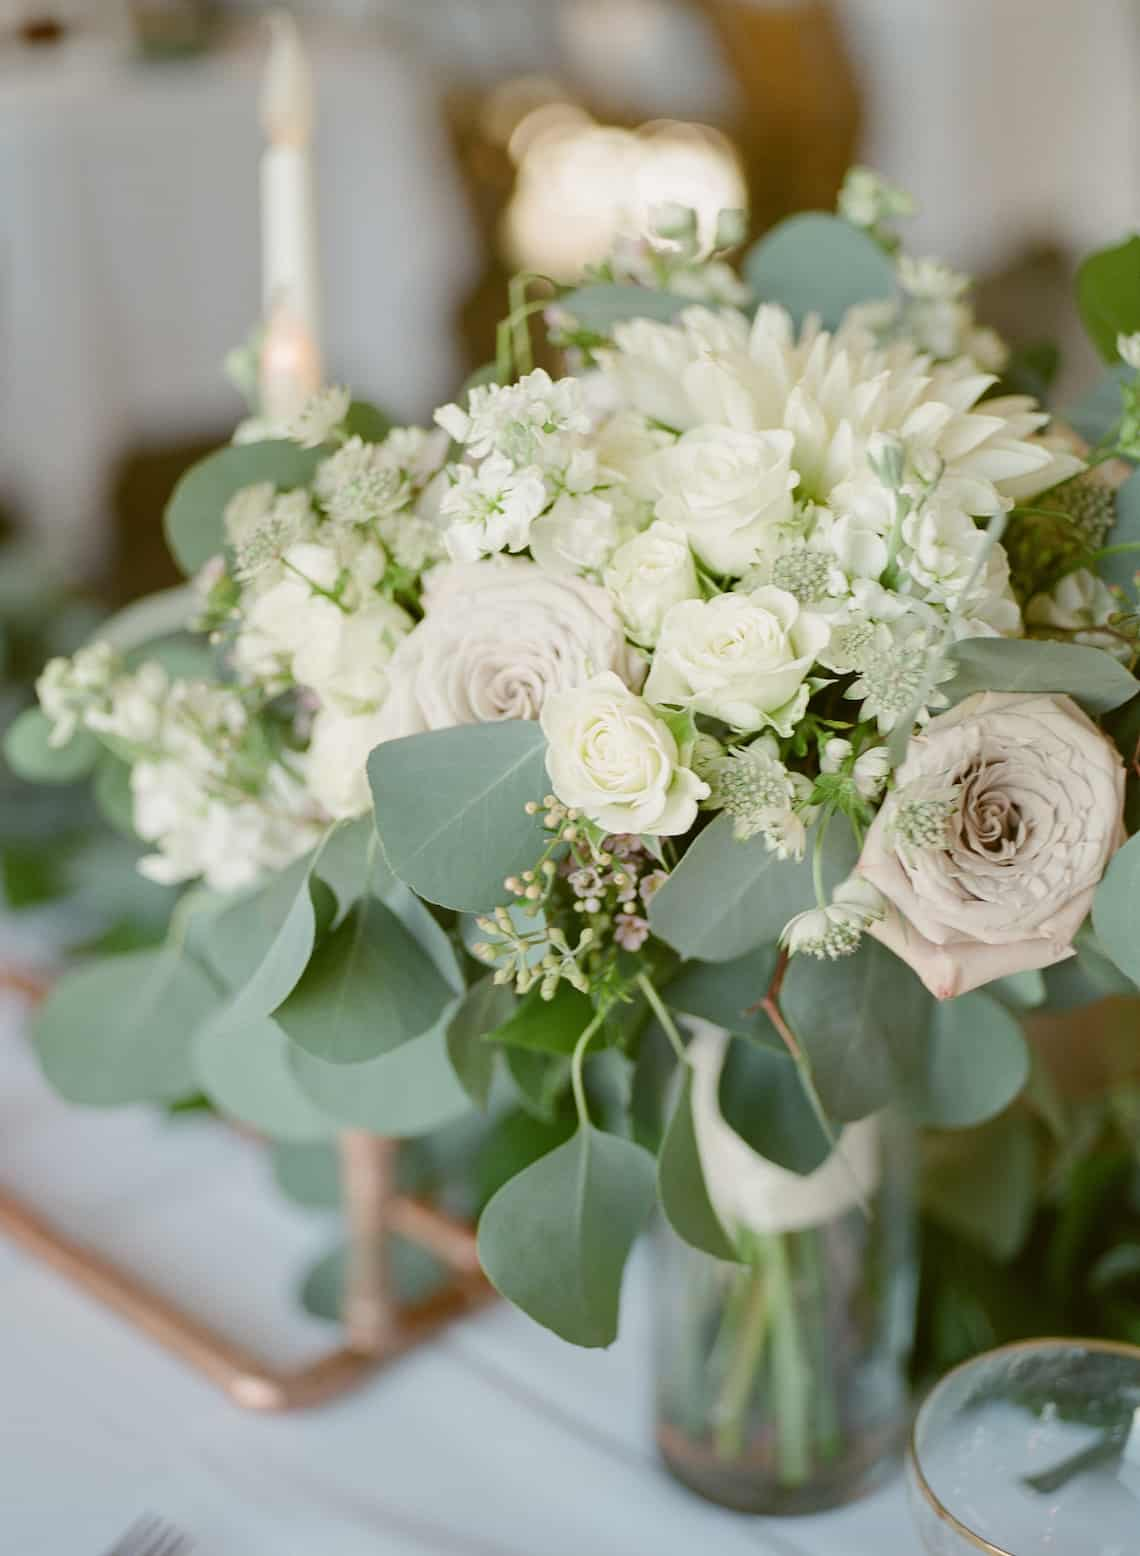 Soft White and Green Wedding Flowers